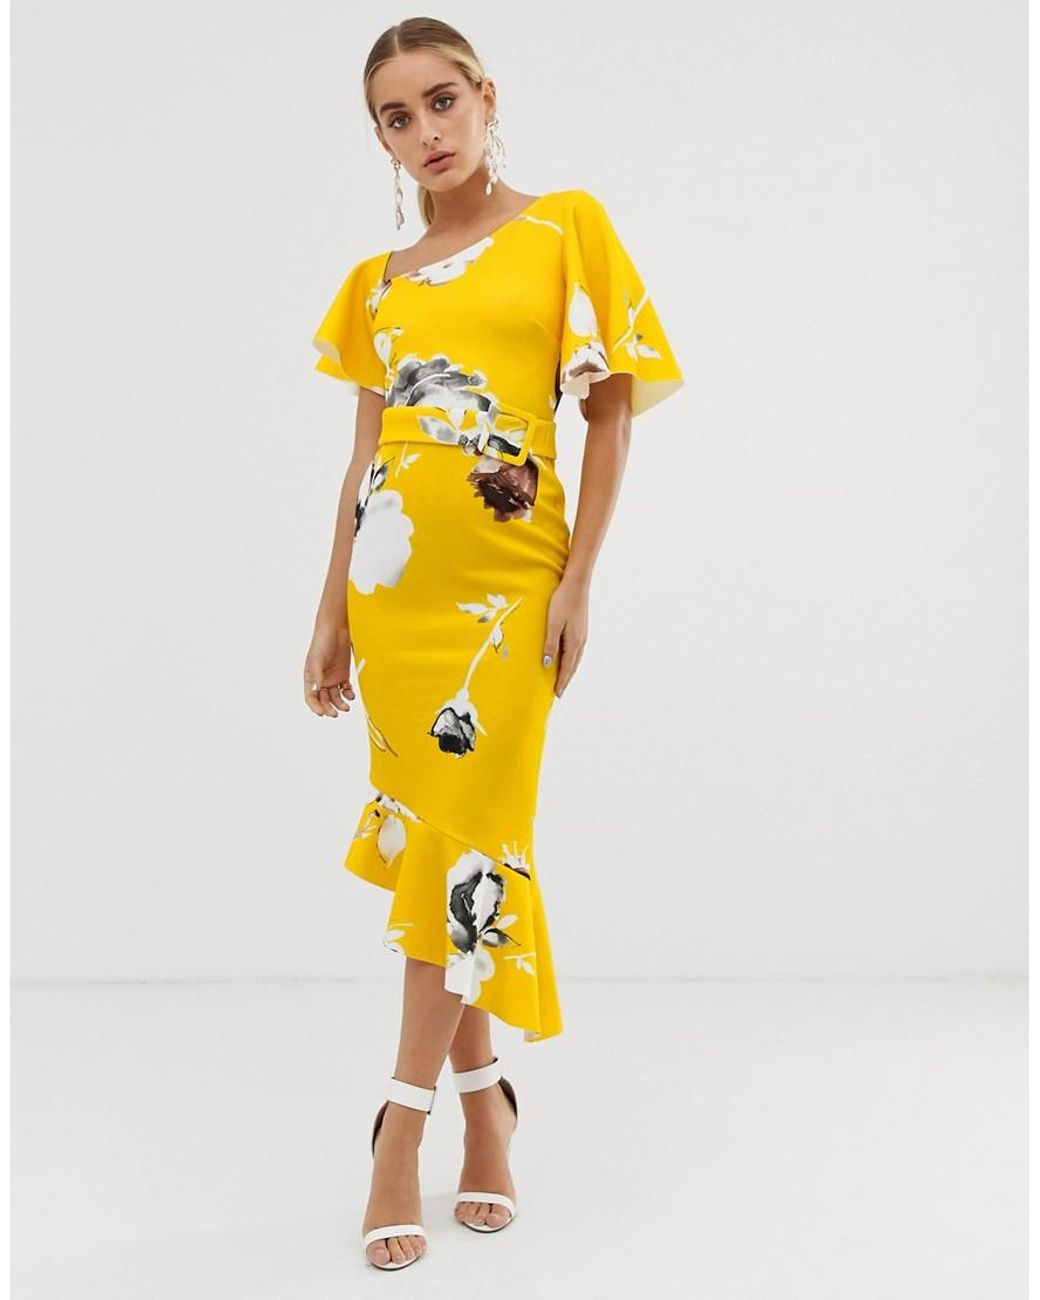 40e651857 Women's Yellow One Shoulder Belted Floral Ruffle Midi Dress